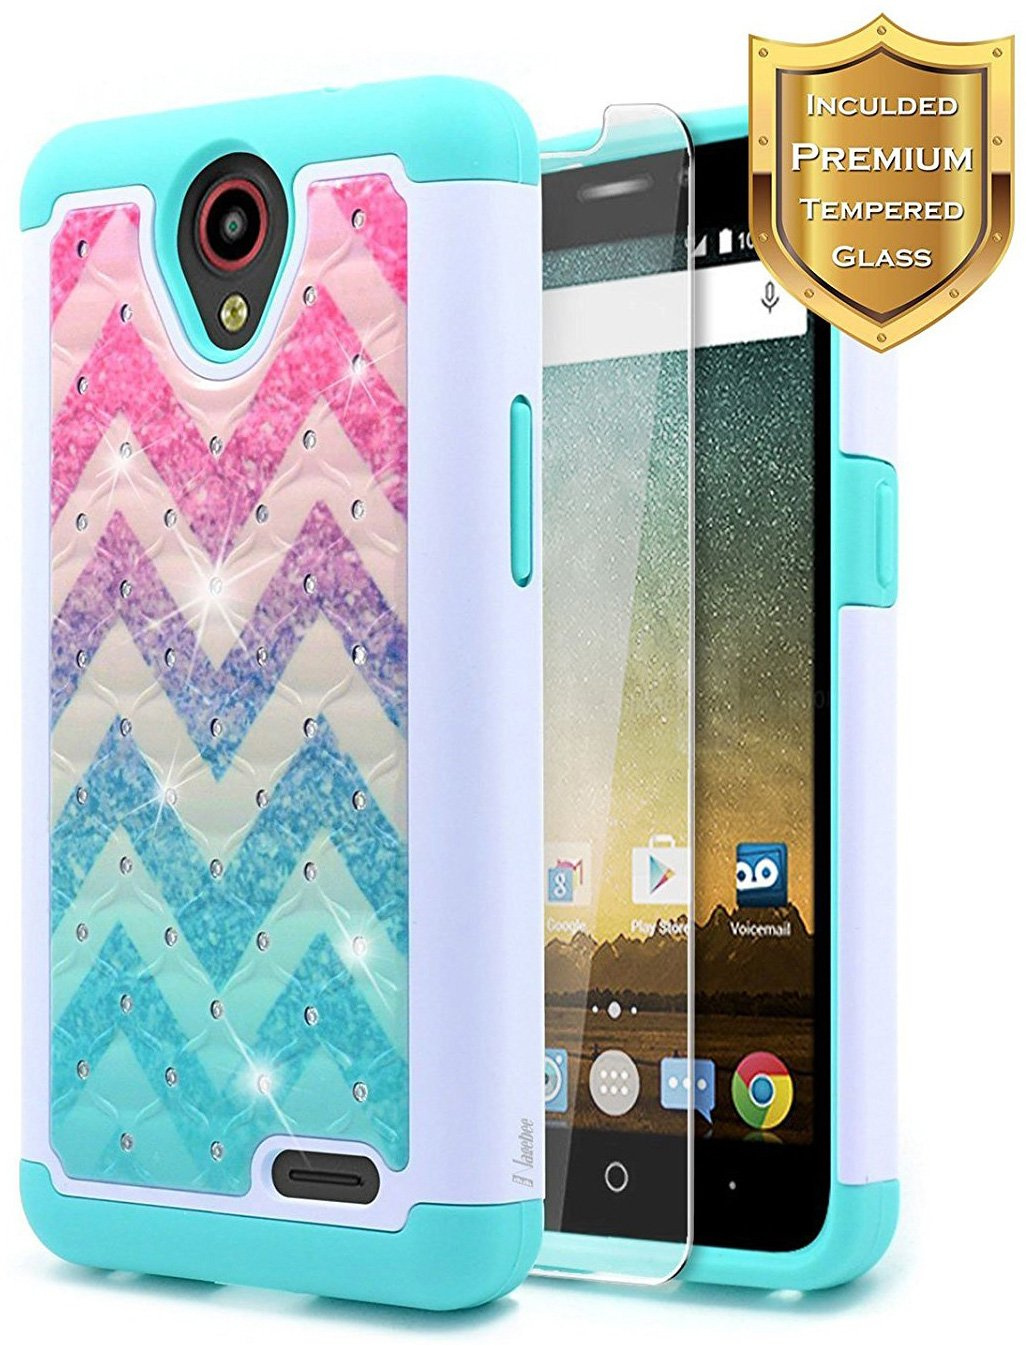 new product 31cdb 40ad9 Zte Maven 3 Phone Case Top Deals & Lowest Price | SuperOffers.com